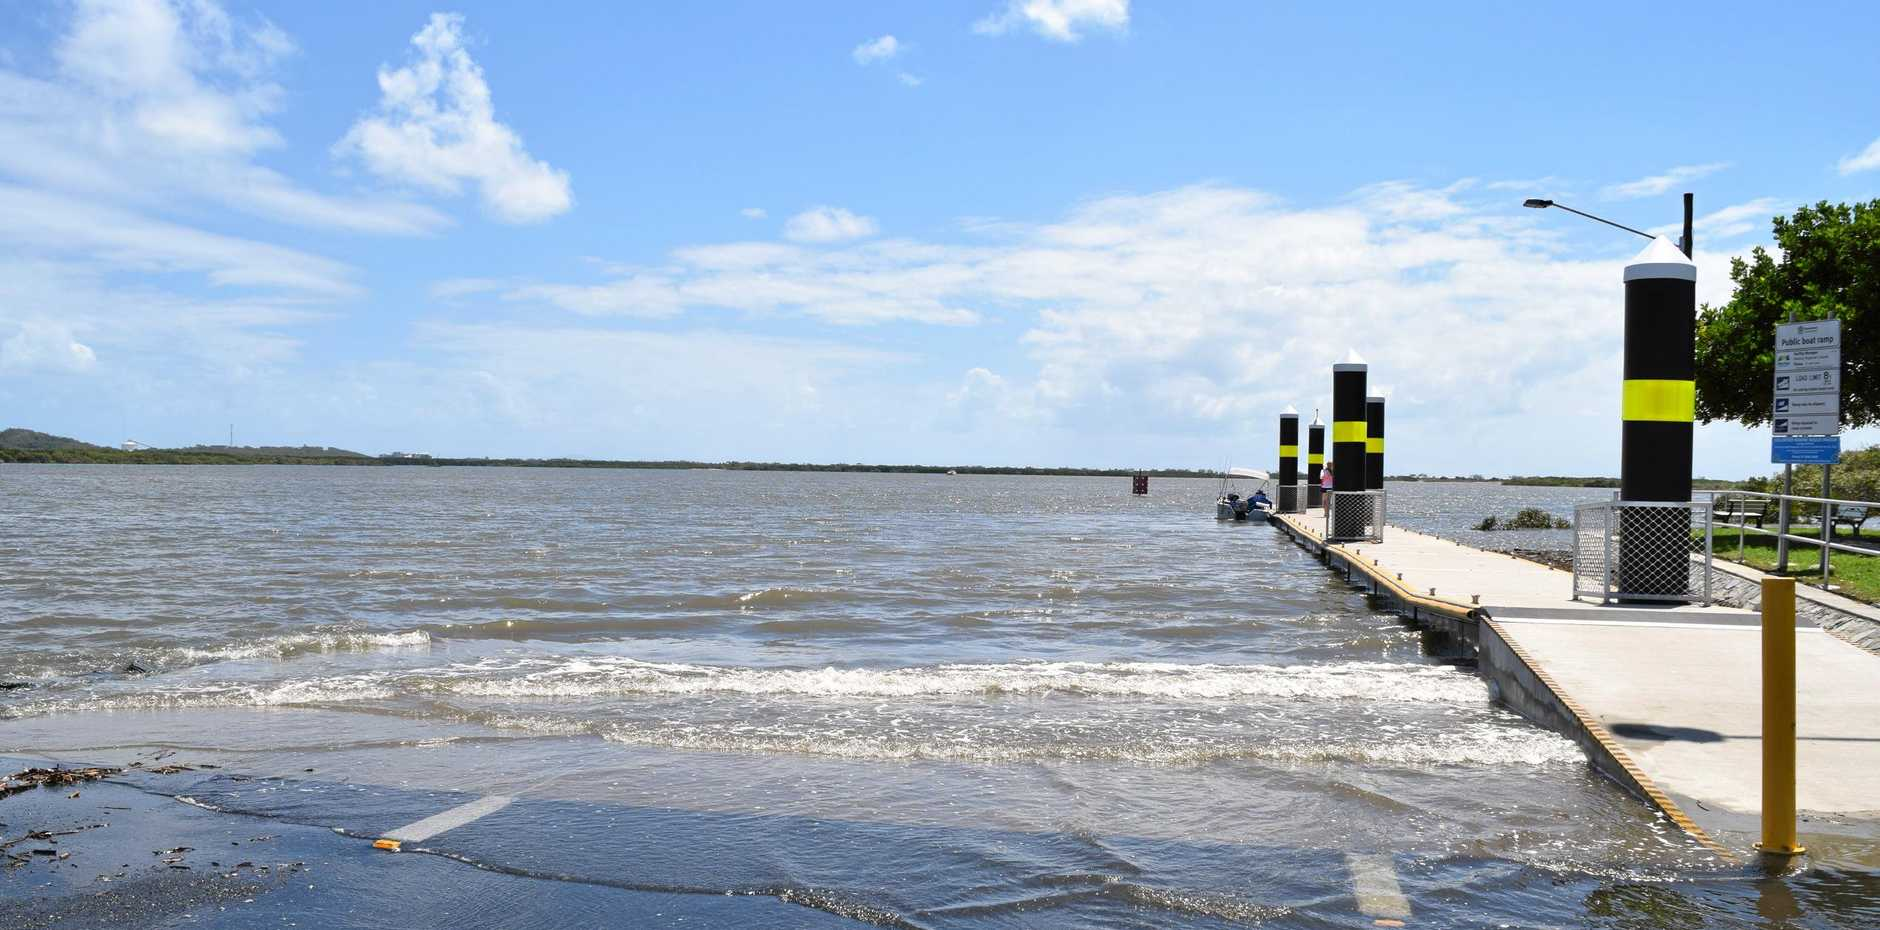 The Pioneer River submerged the River Street boat ramp during a high tide of 6.29m on Sunday, January 20 at 10:11am.